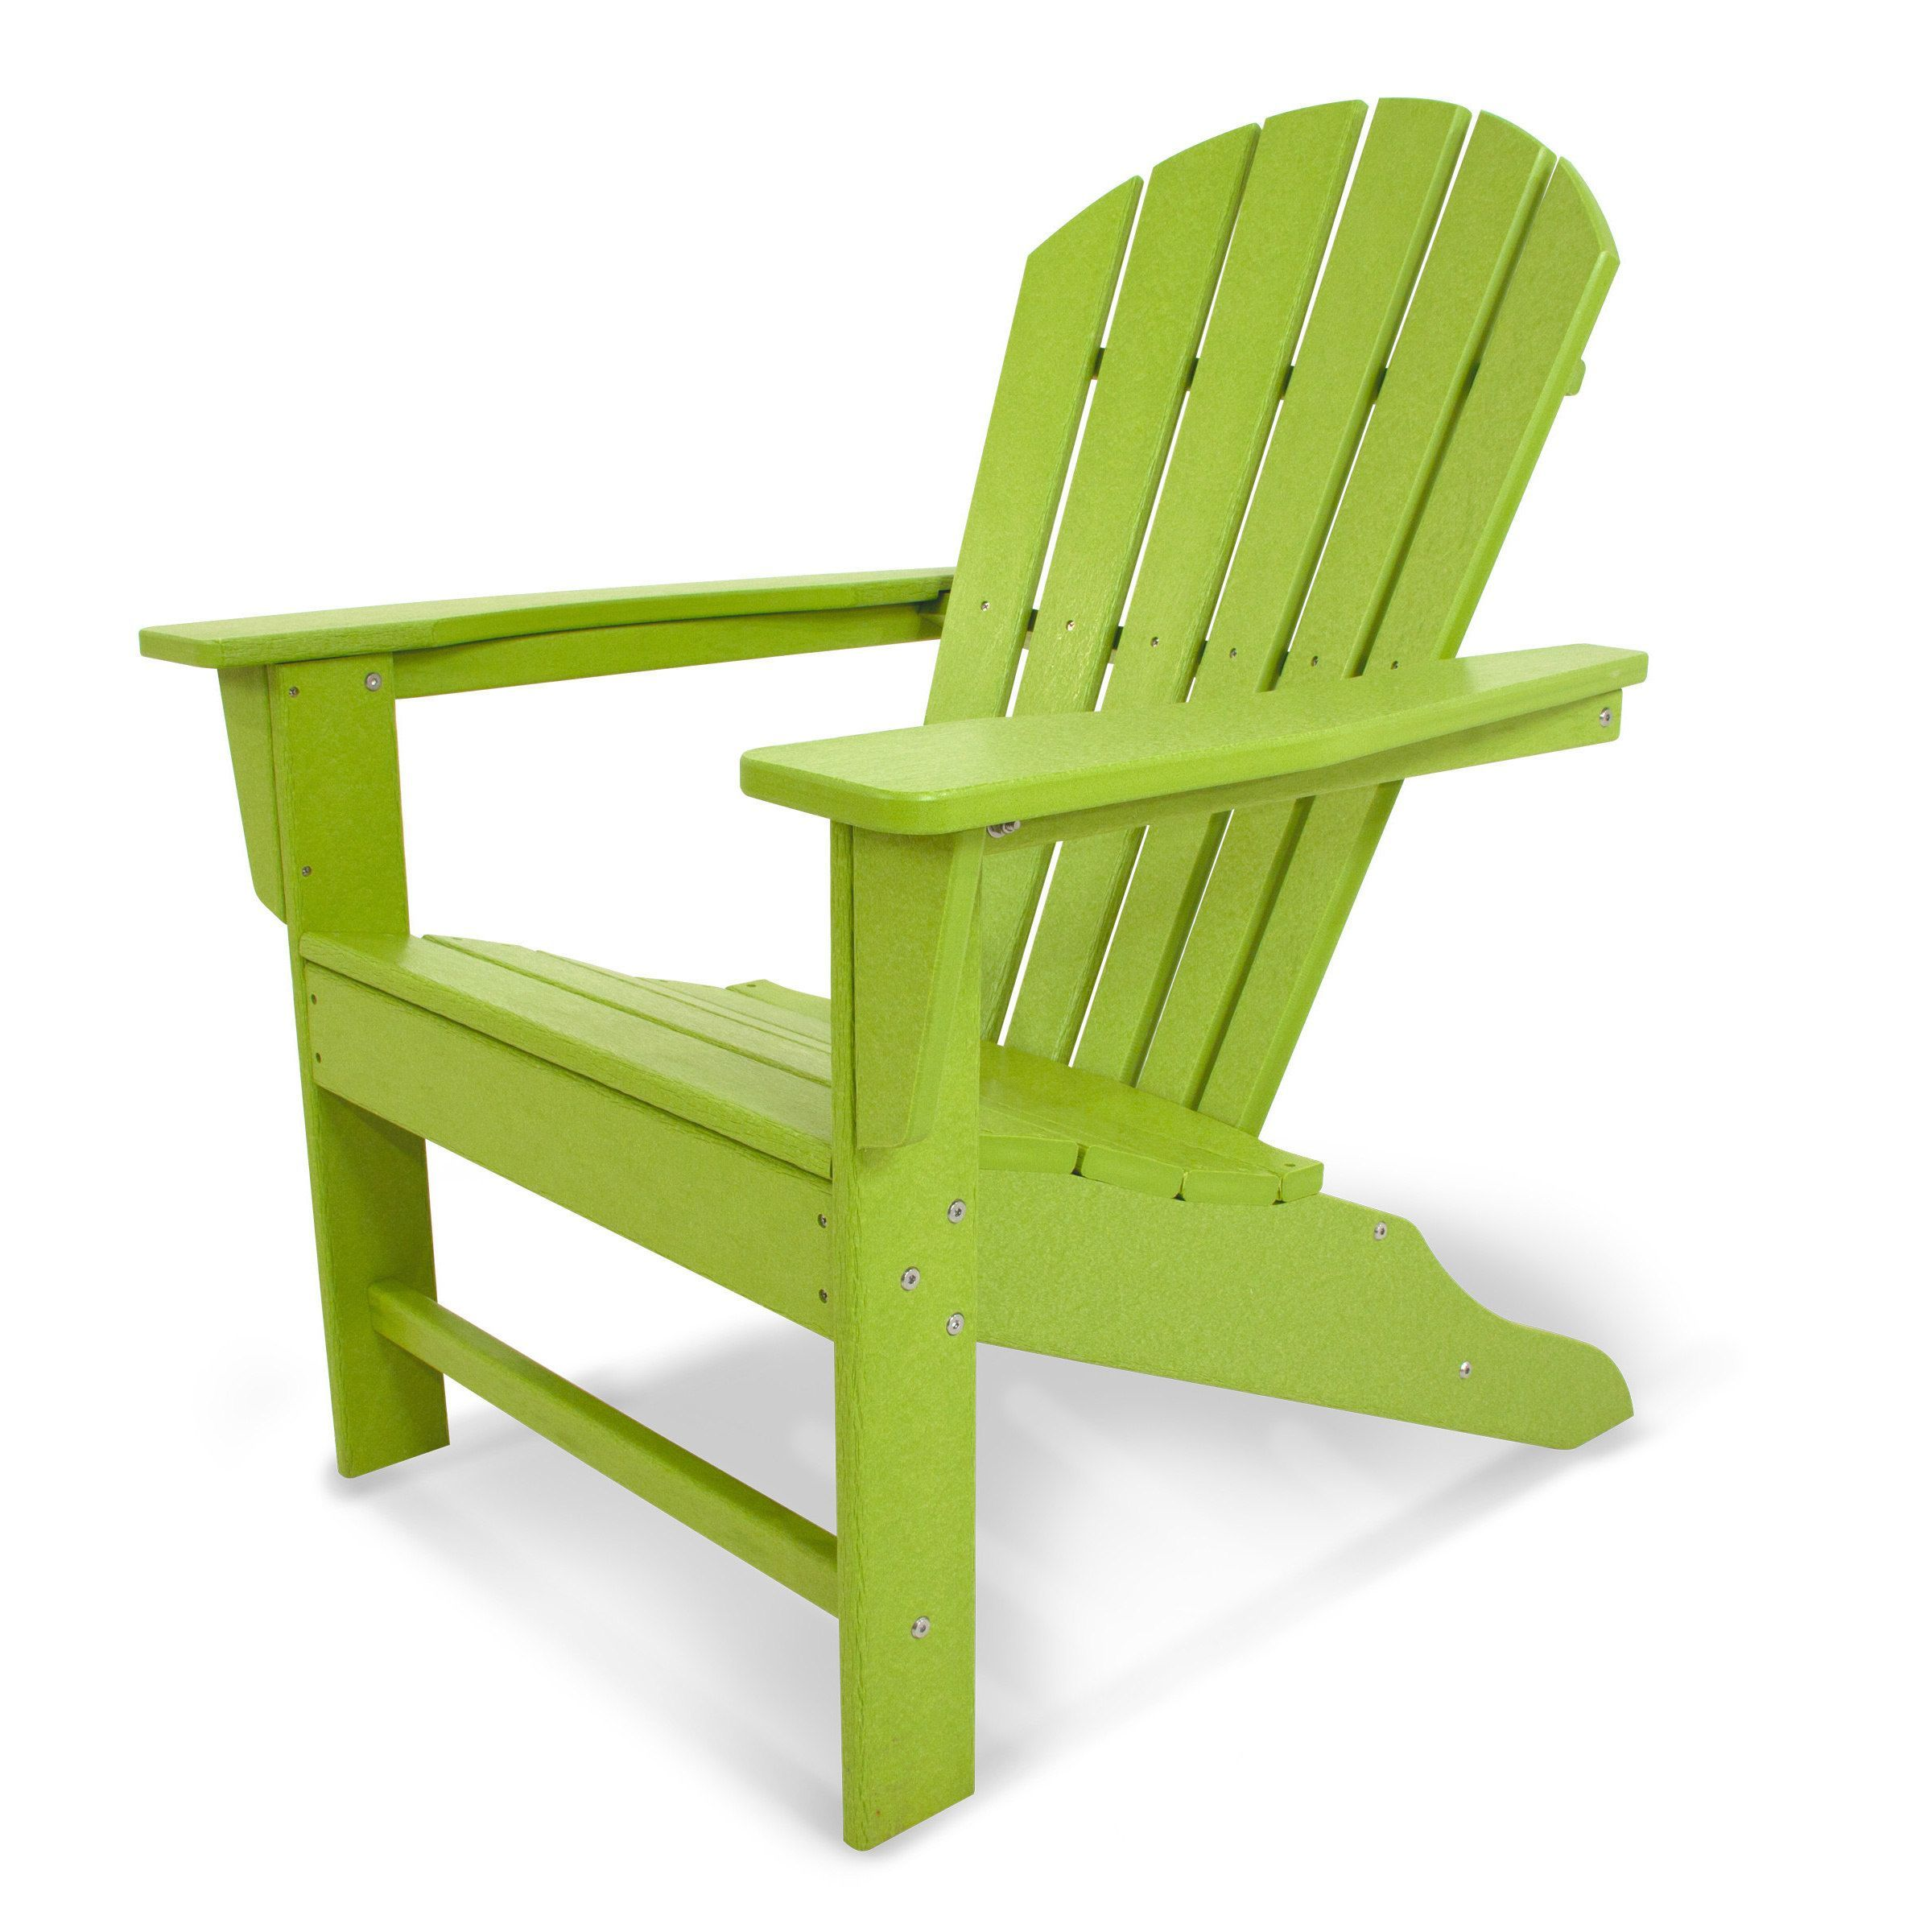 lime green patio furniture. Polywood South Beach Adirondack (Lime), Green, Size Single, Patio Furniture ( Lime Green